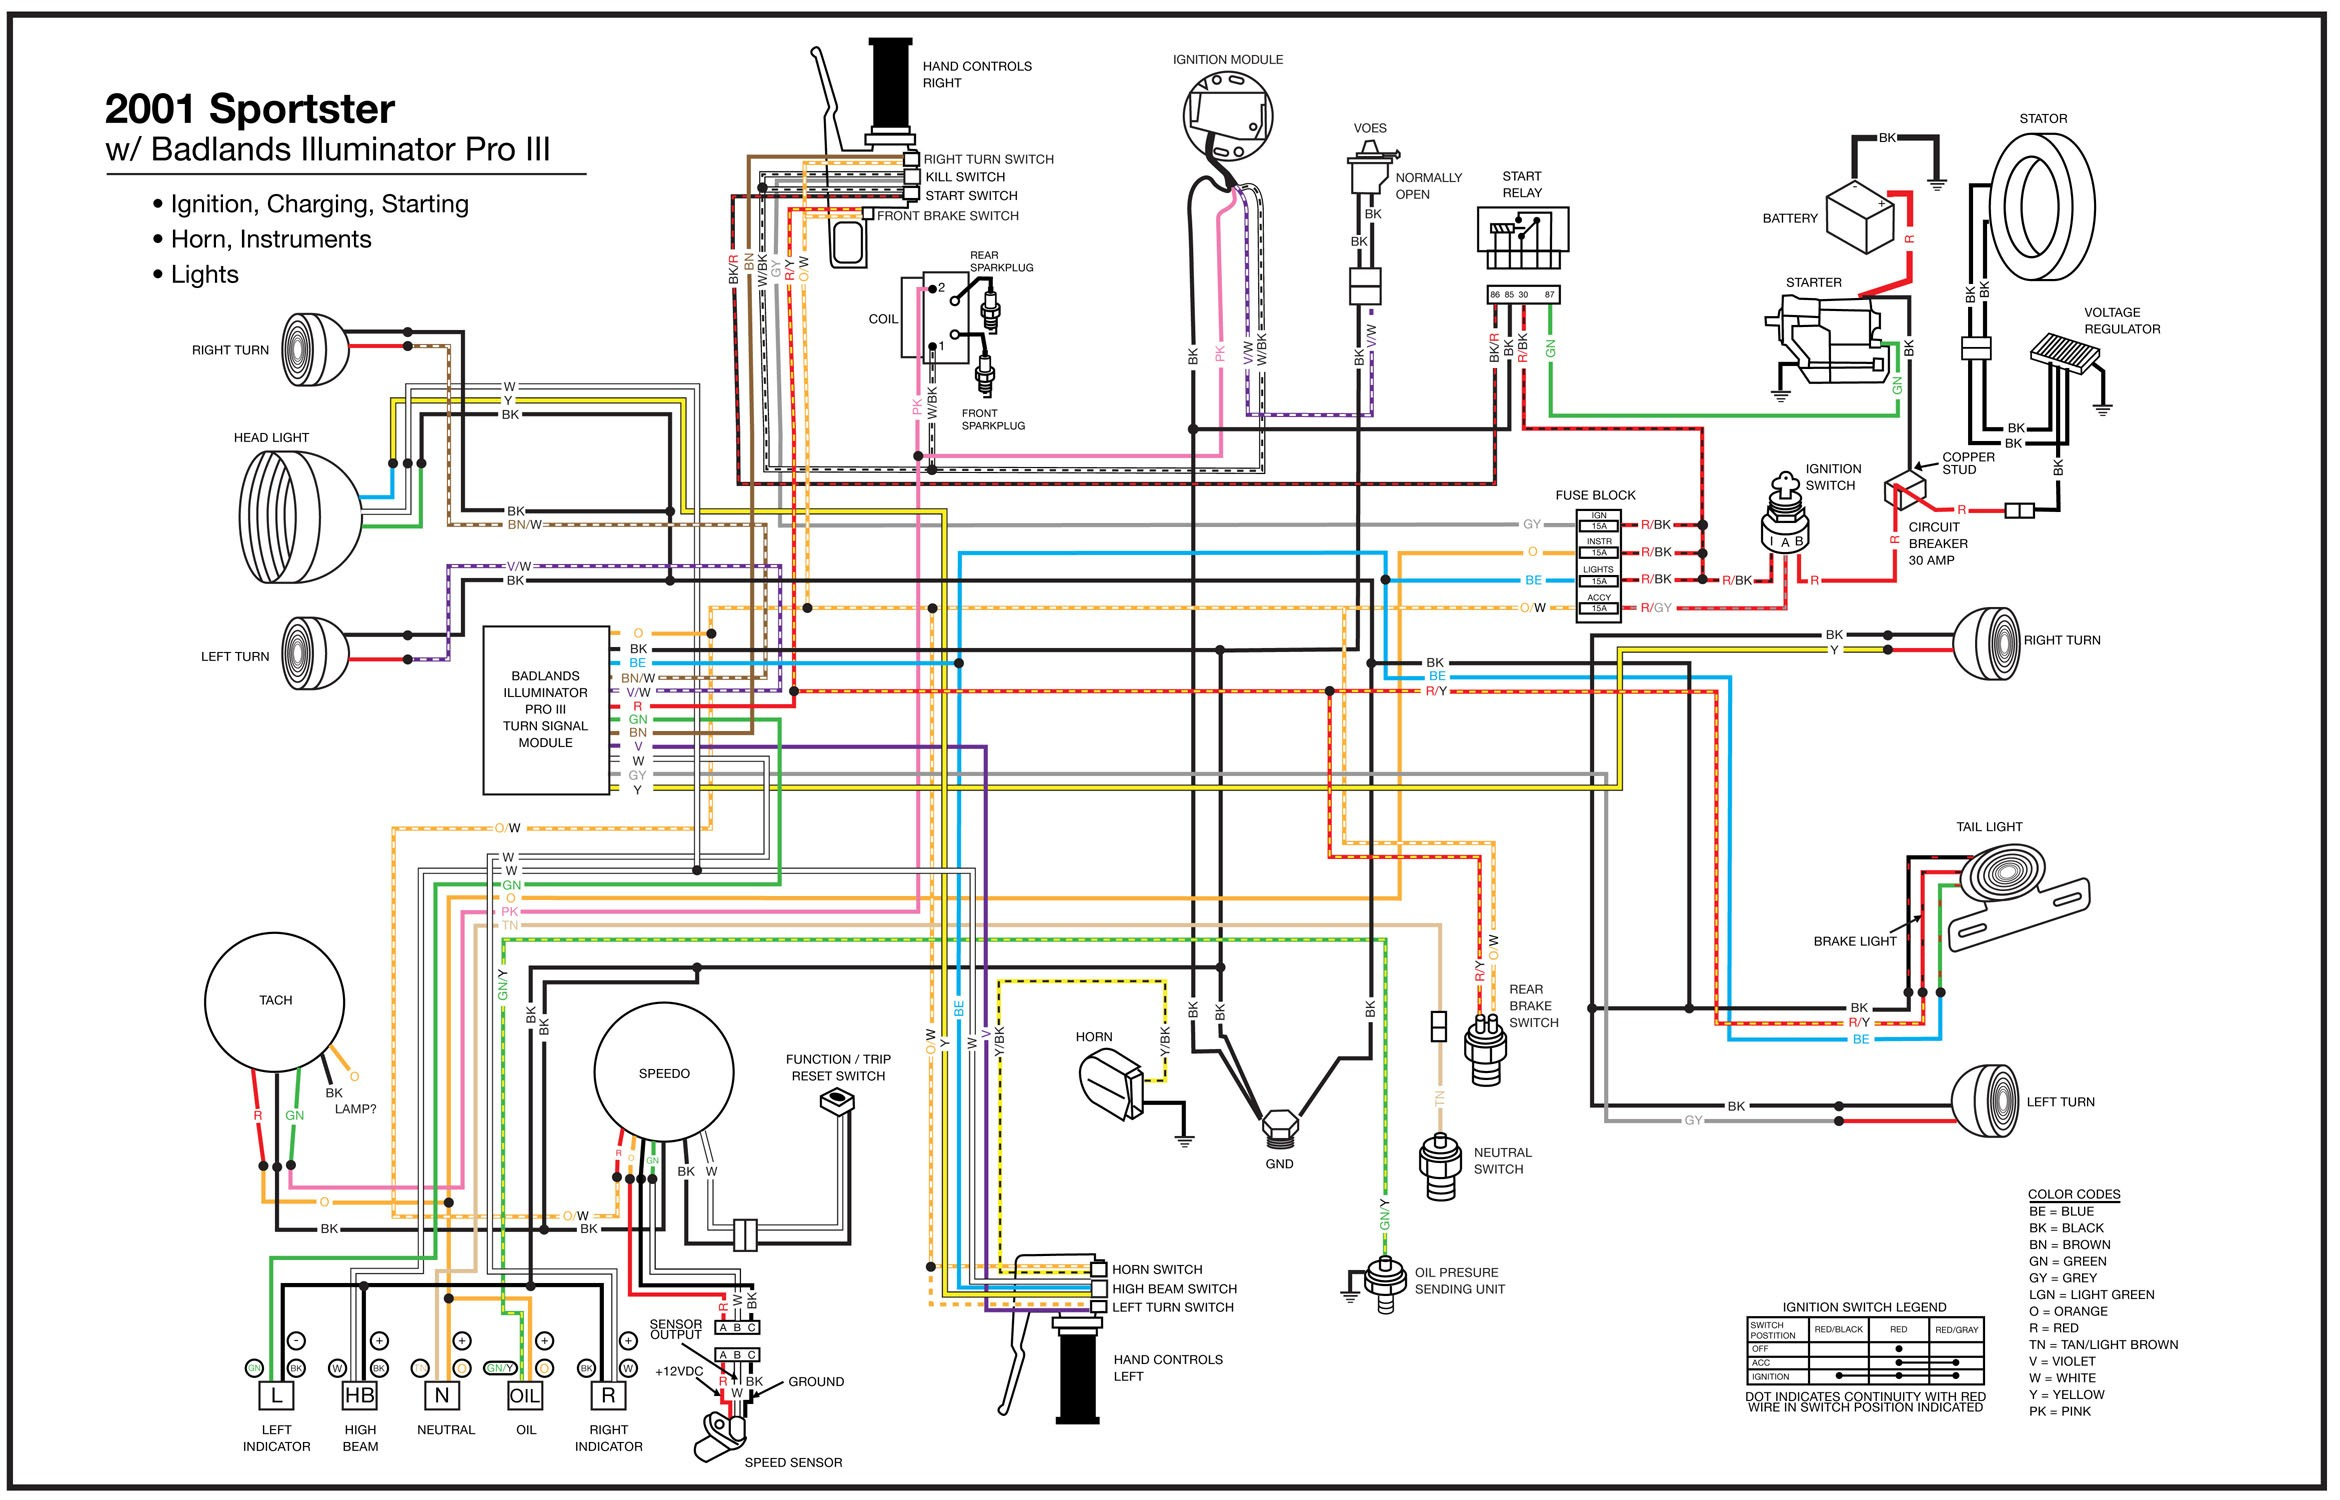 Simple Chopper Wiring Diagram Harley Wiring Diagrams Copy Sch Mas Lectrique Des Harley Davidson Of Simple Chopper Wiring Diagram